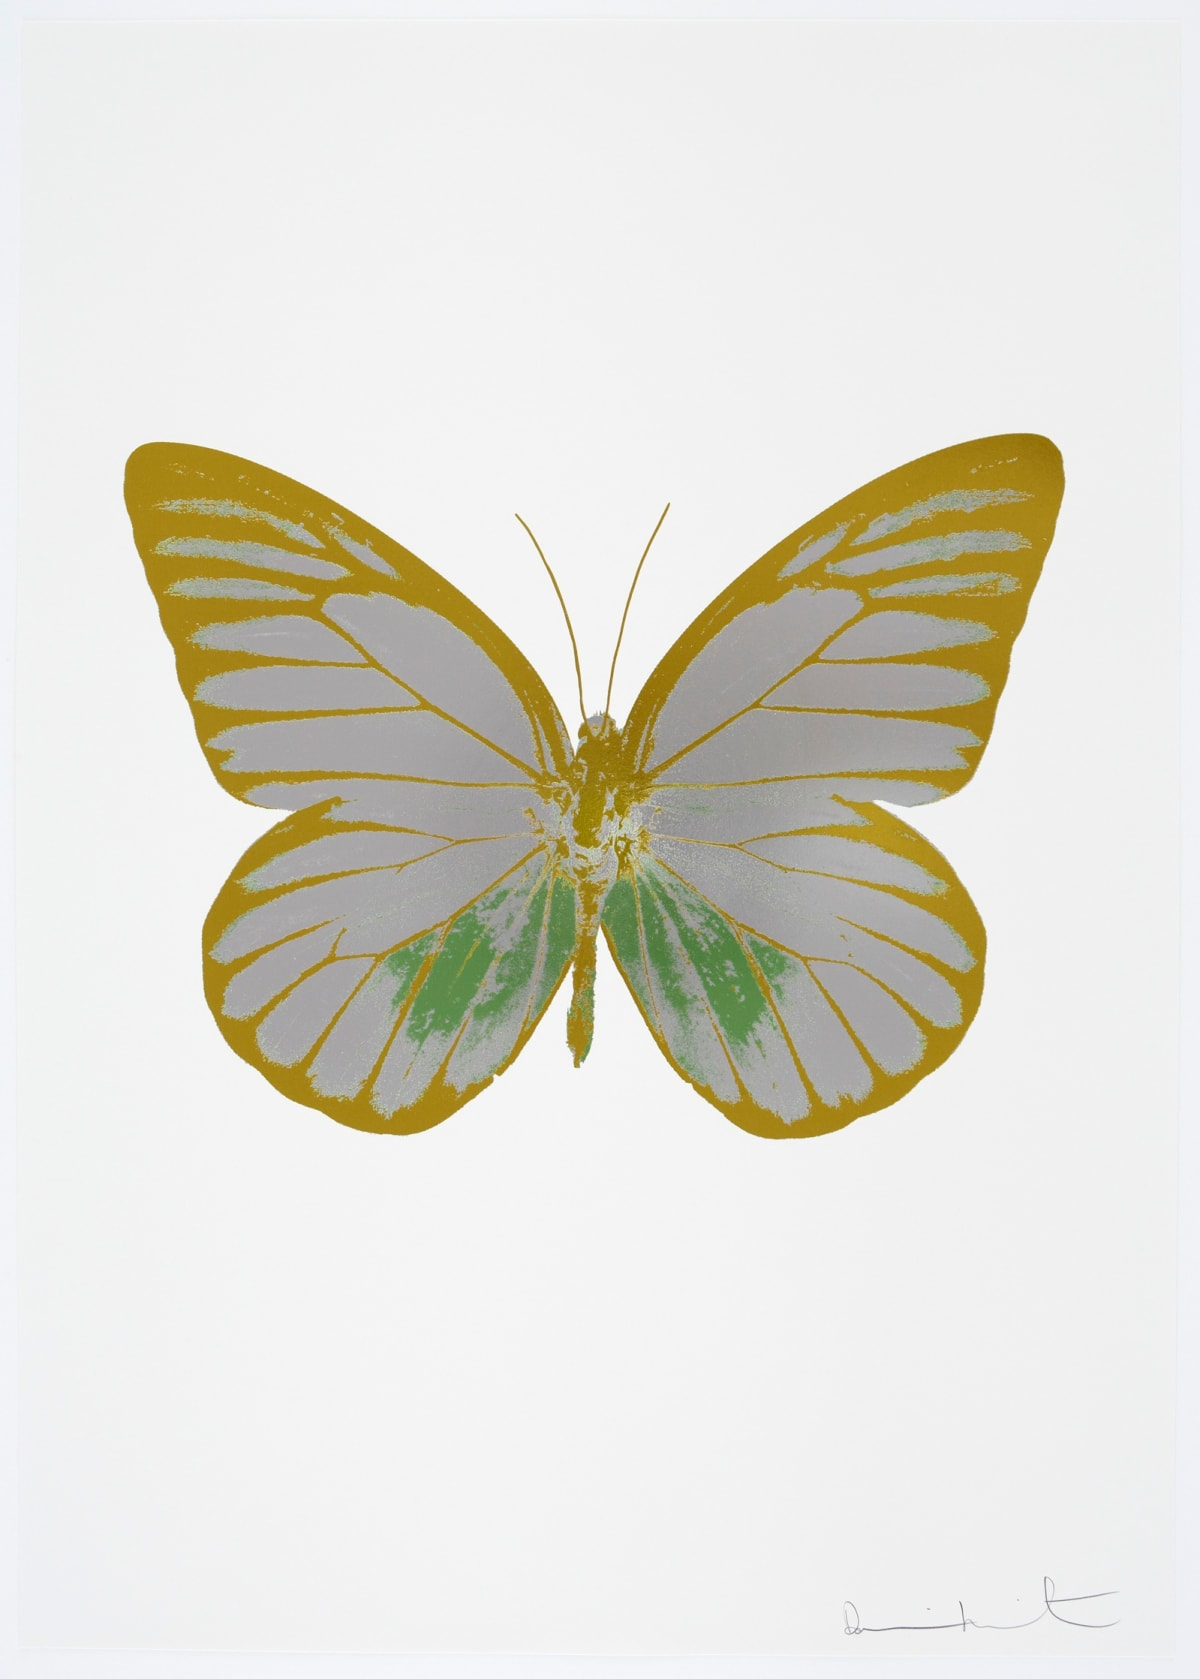 Damien Hirst The Souls I - Silver Gloss/Leaf Green/Oriental Gold, 2010 3 colour foil block on 300gsm Arches 88 archival paper. Signed and numbered. Published by Paul Stolper and Other Criteria 72 x 51cm OC7745 / 659-8 Edition of 15